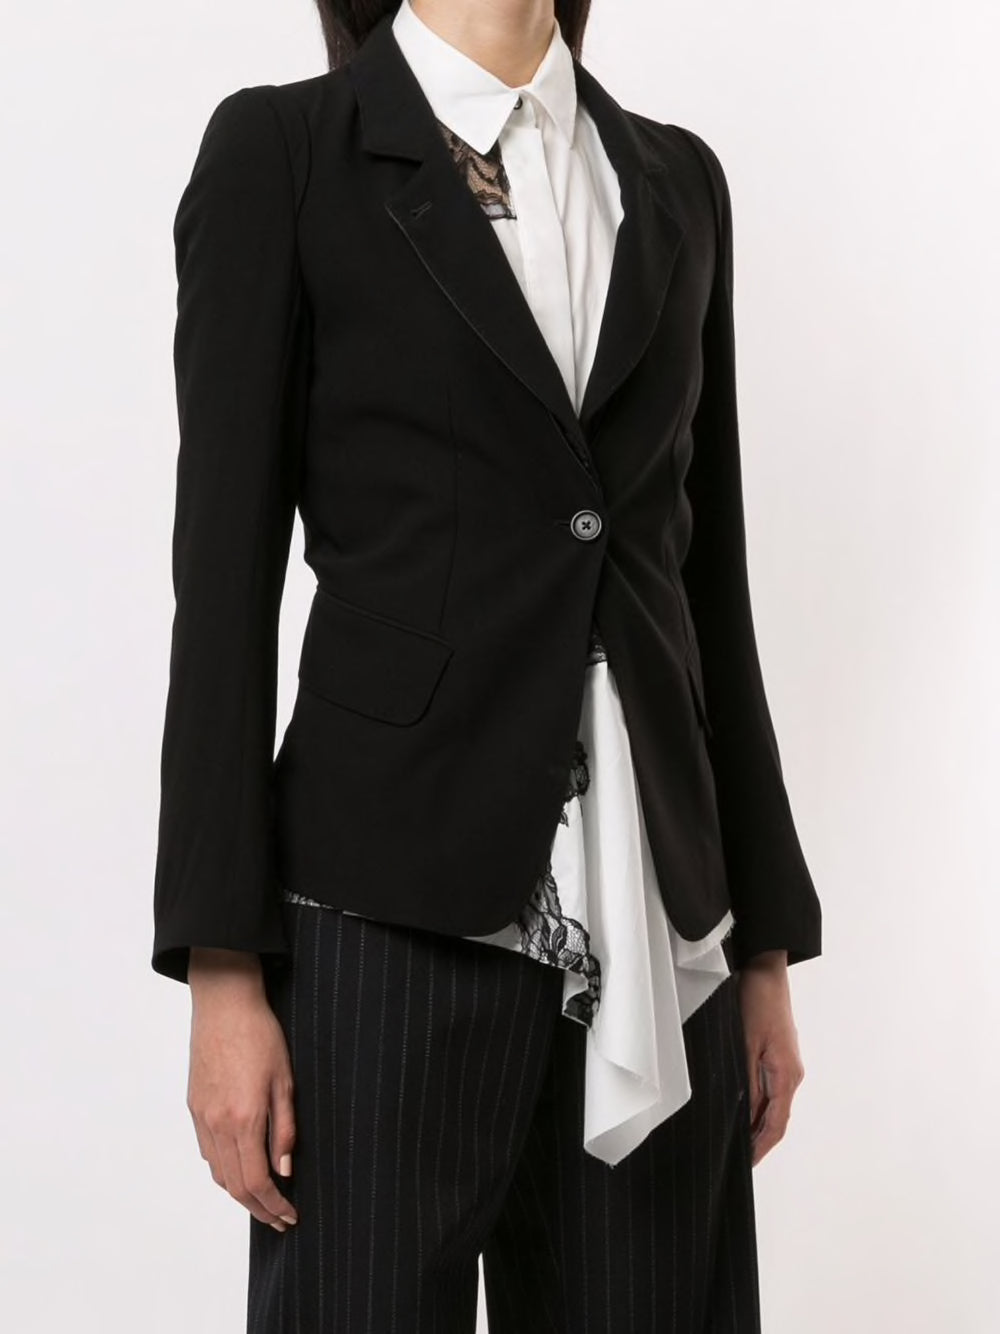 ANN DEMEULEMEESTER WOMEN WOOL + DUCHESSE TAILORED JACKET